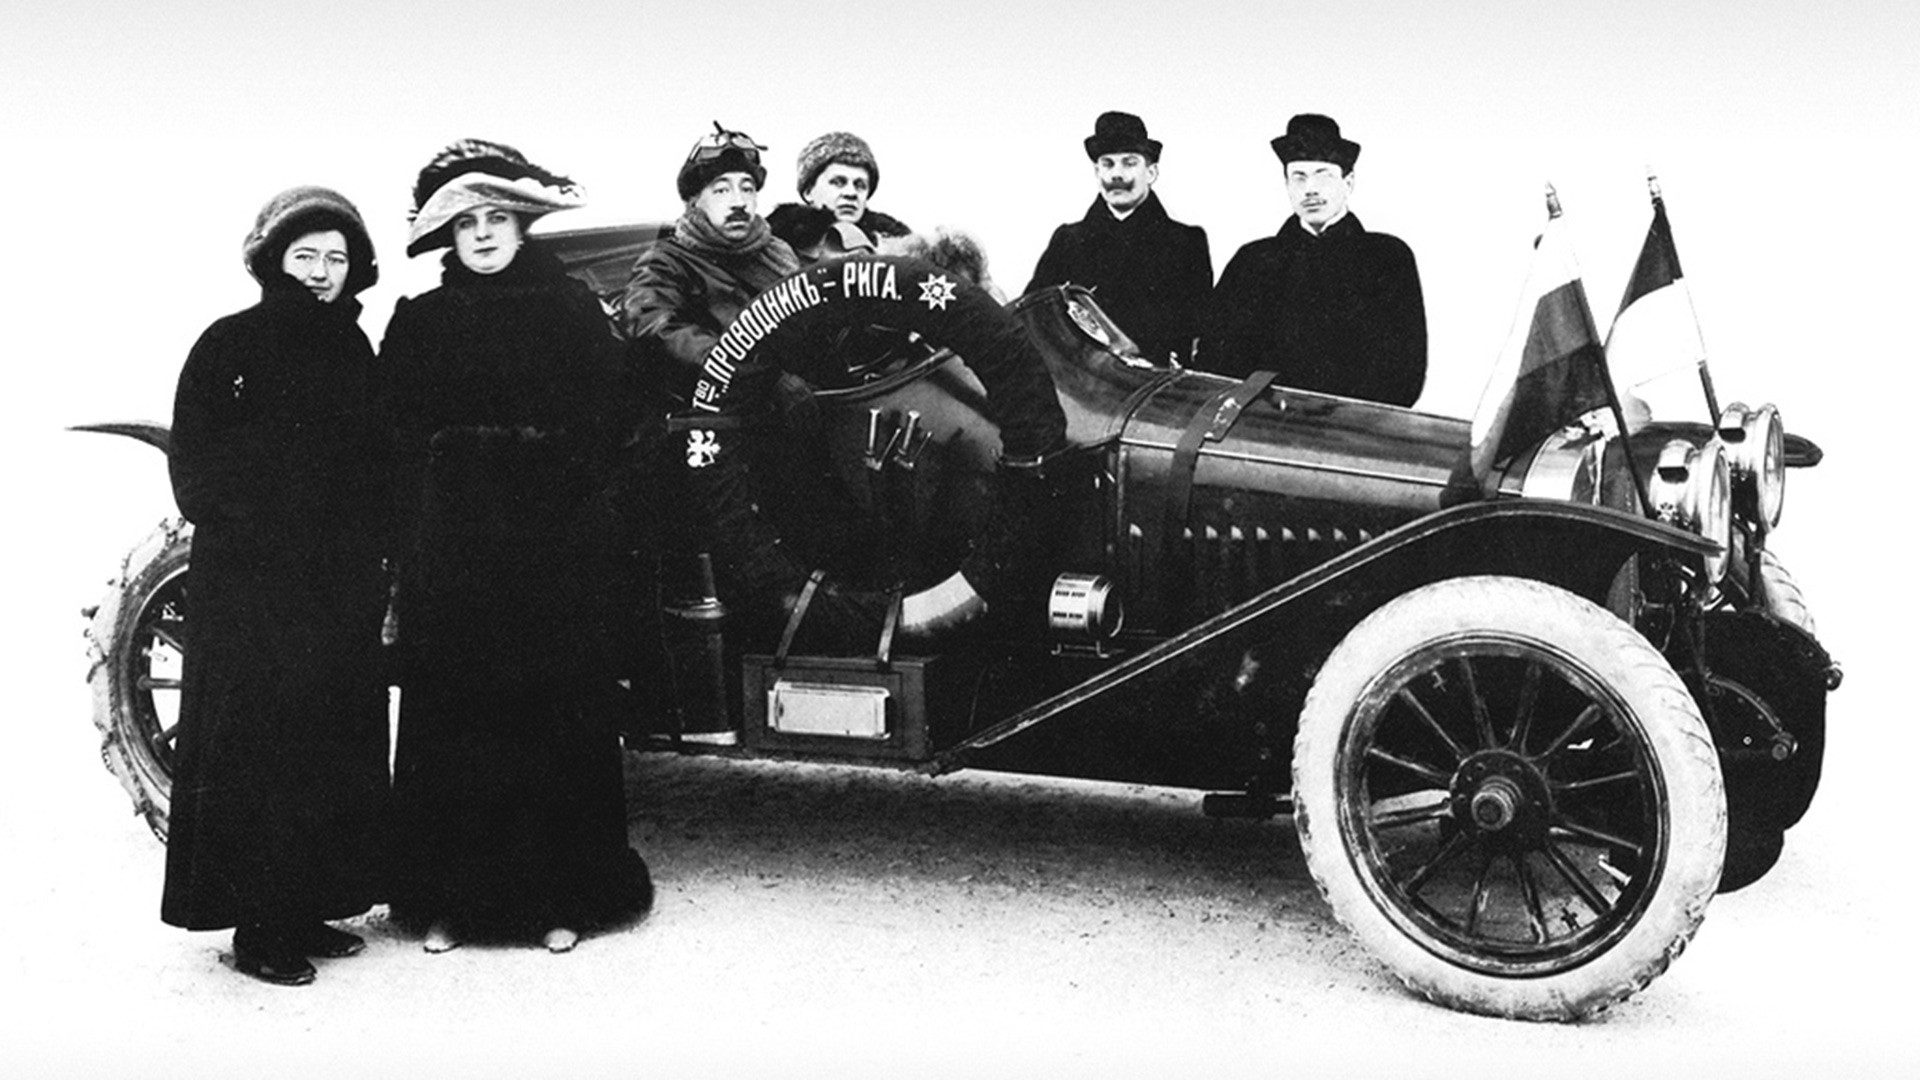 Andrei Nagel and his Russo-Balt car before the start of Monte Carlo rally in 1912.